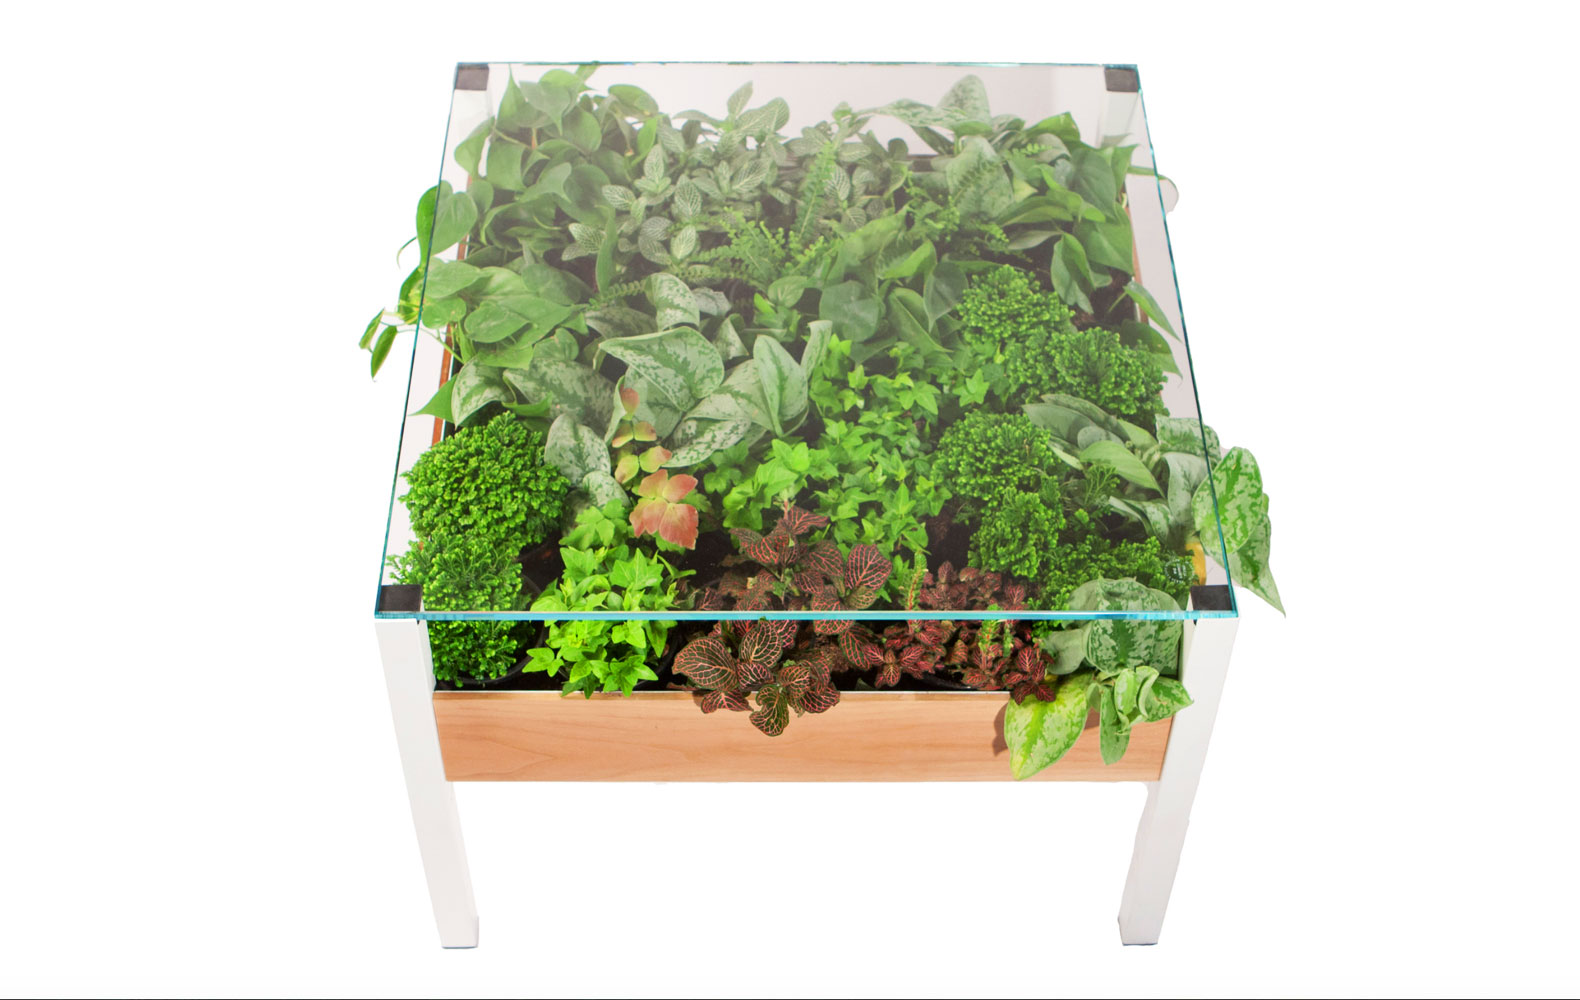 The Living Table is a verdant indoor garden hidden in your table